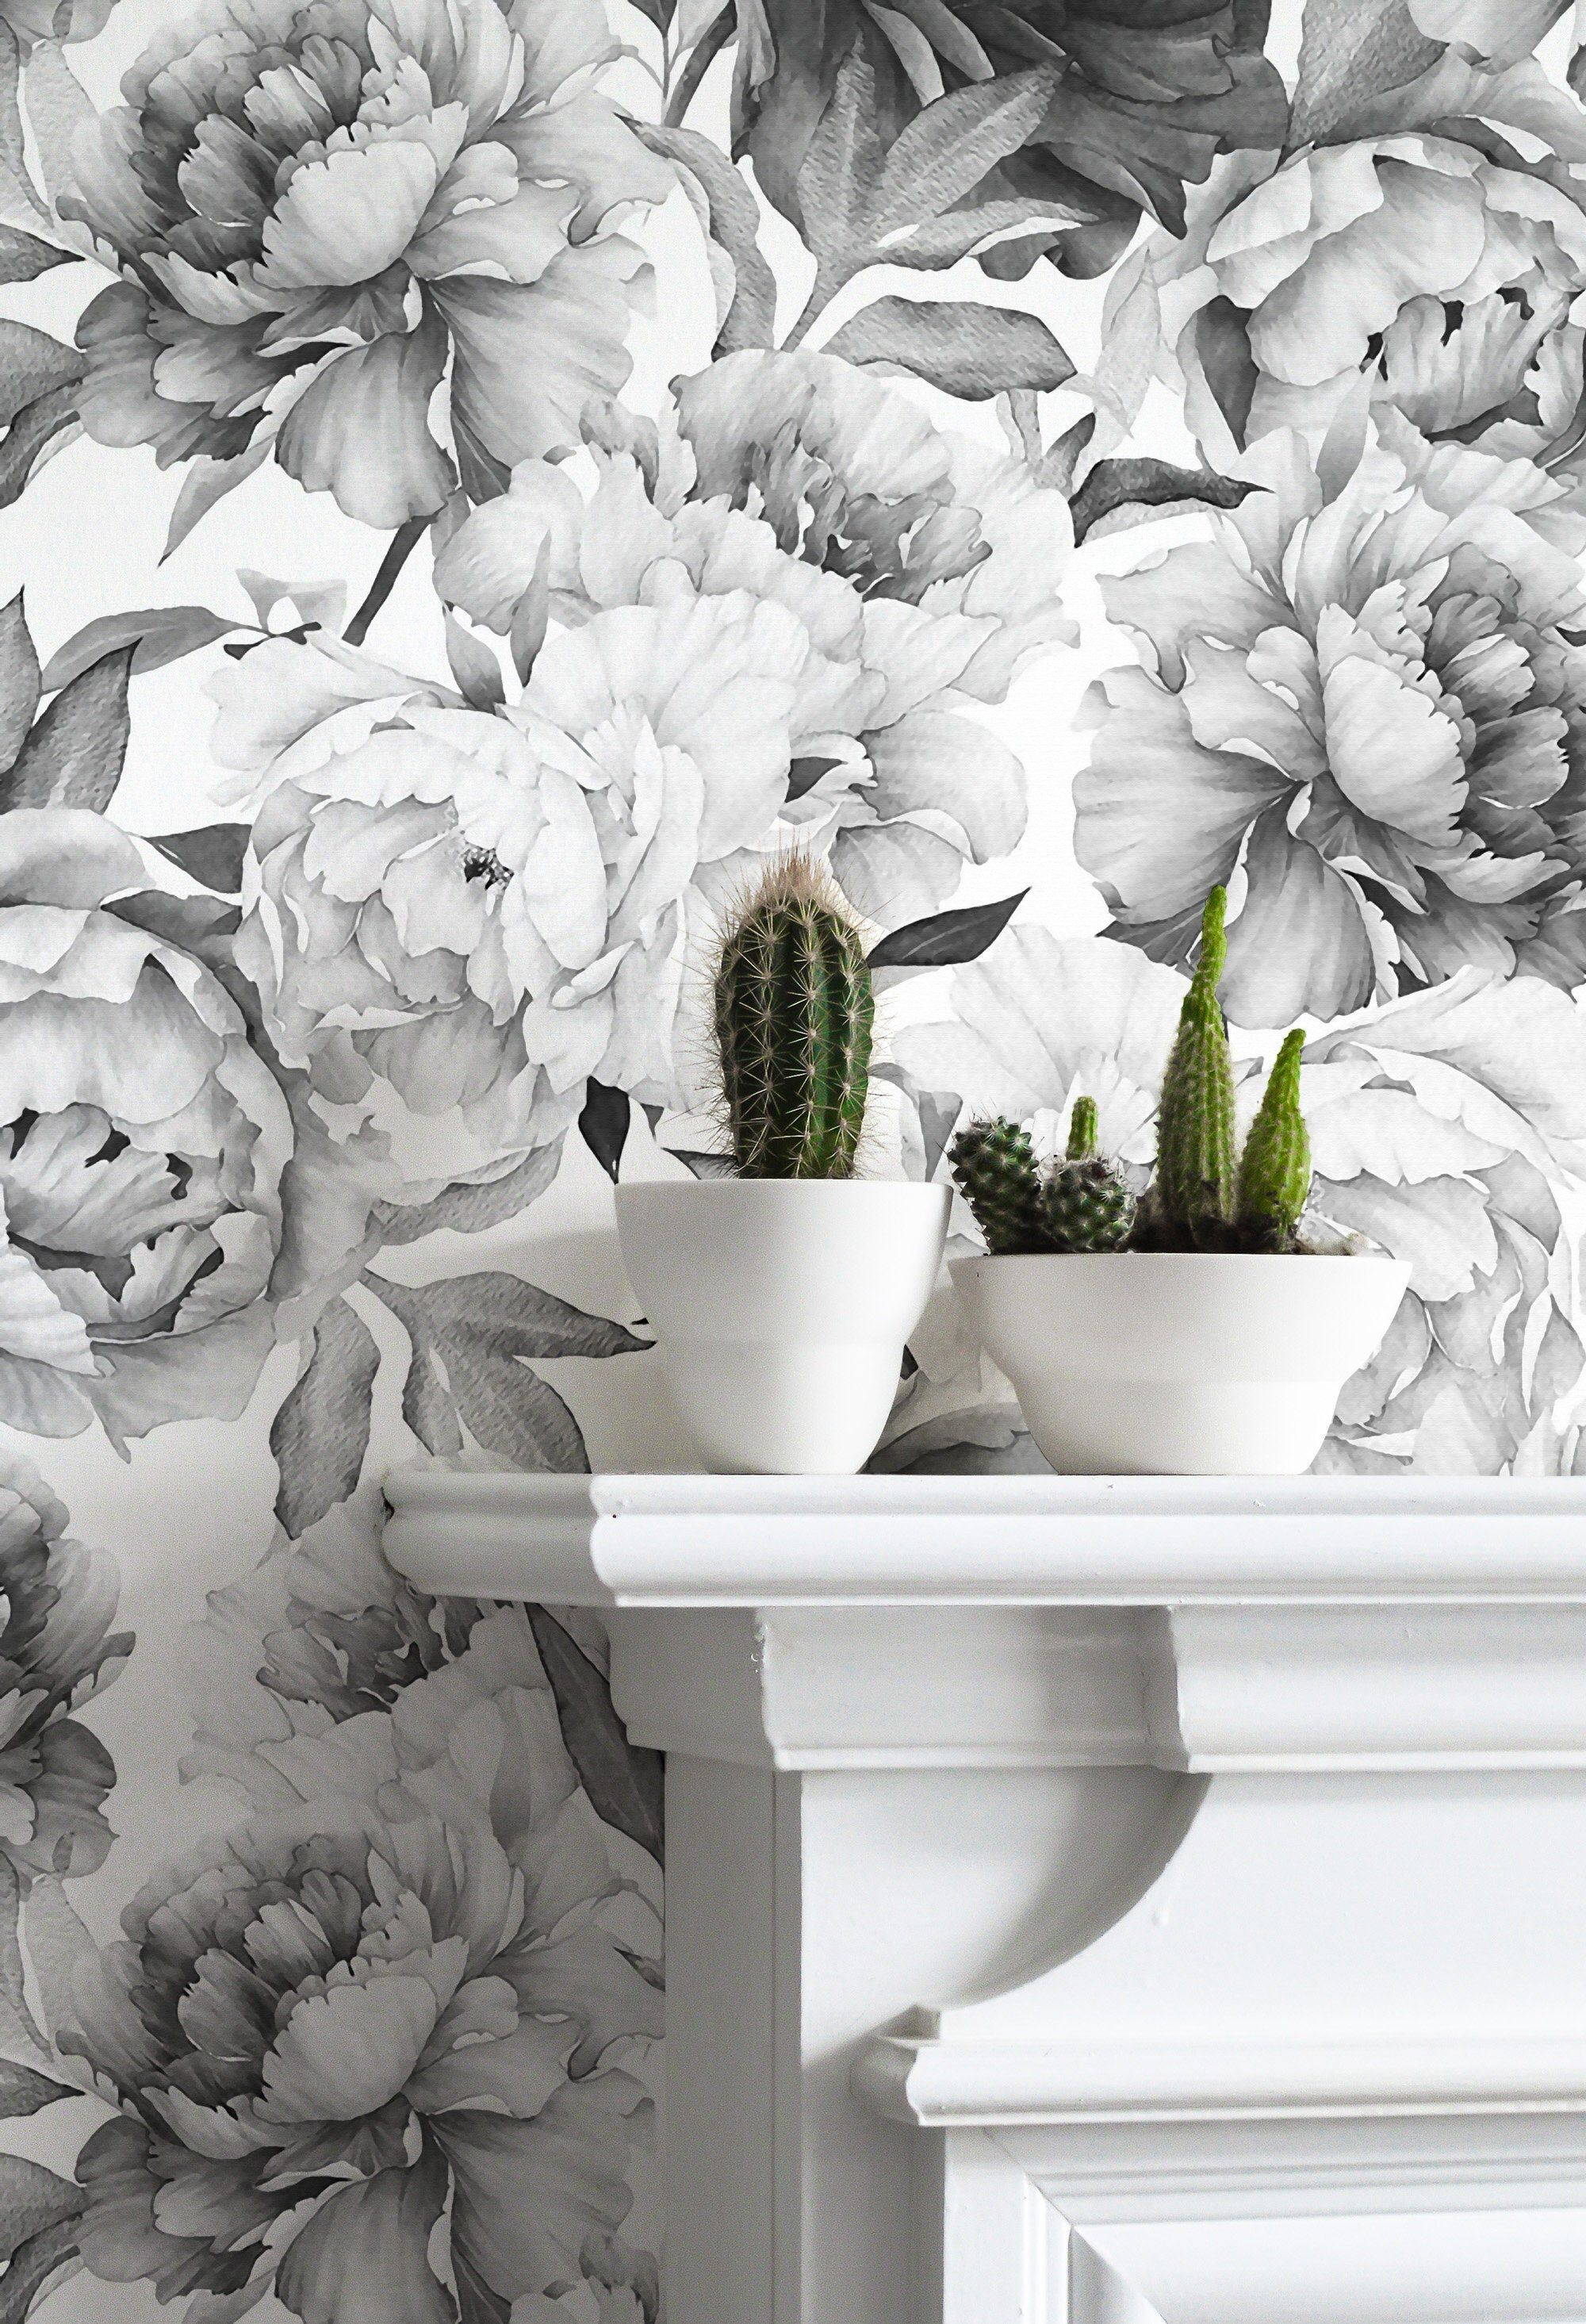 Giant Black And White Peony Removable Wallpaper Mural Etsy In 2020 Floral Wallpaper Mural Wallpaper Mural